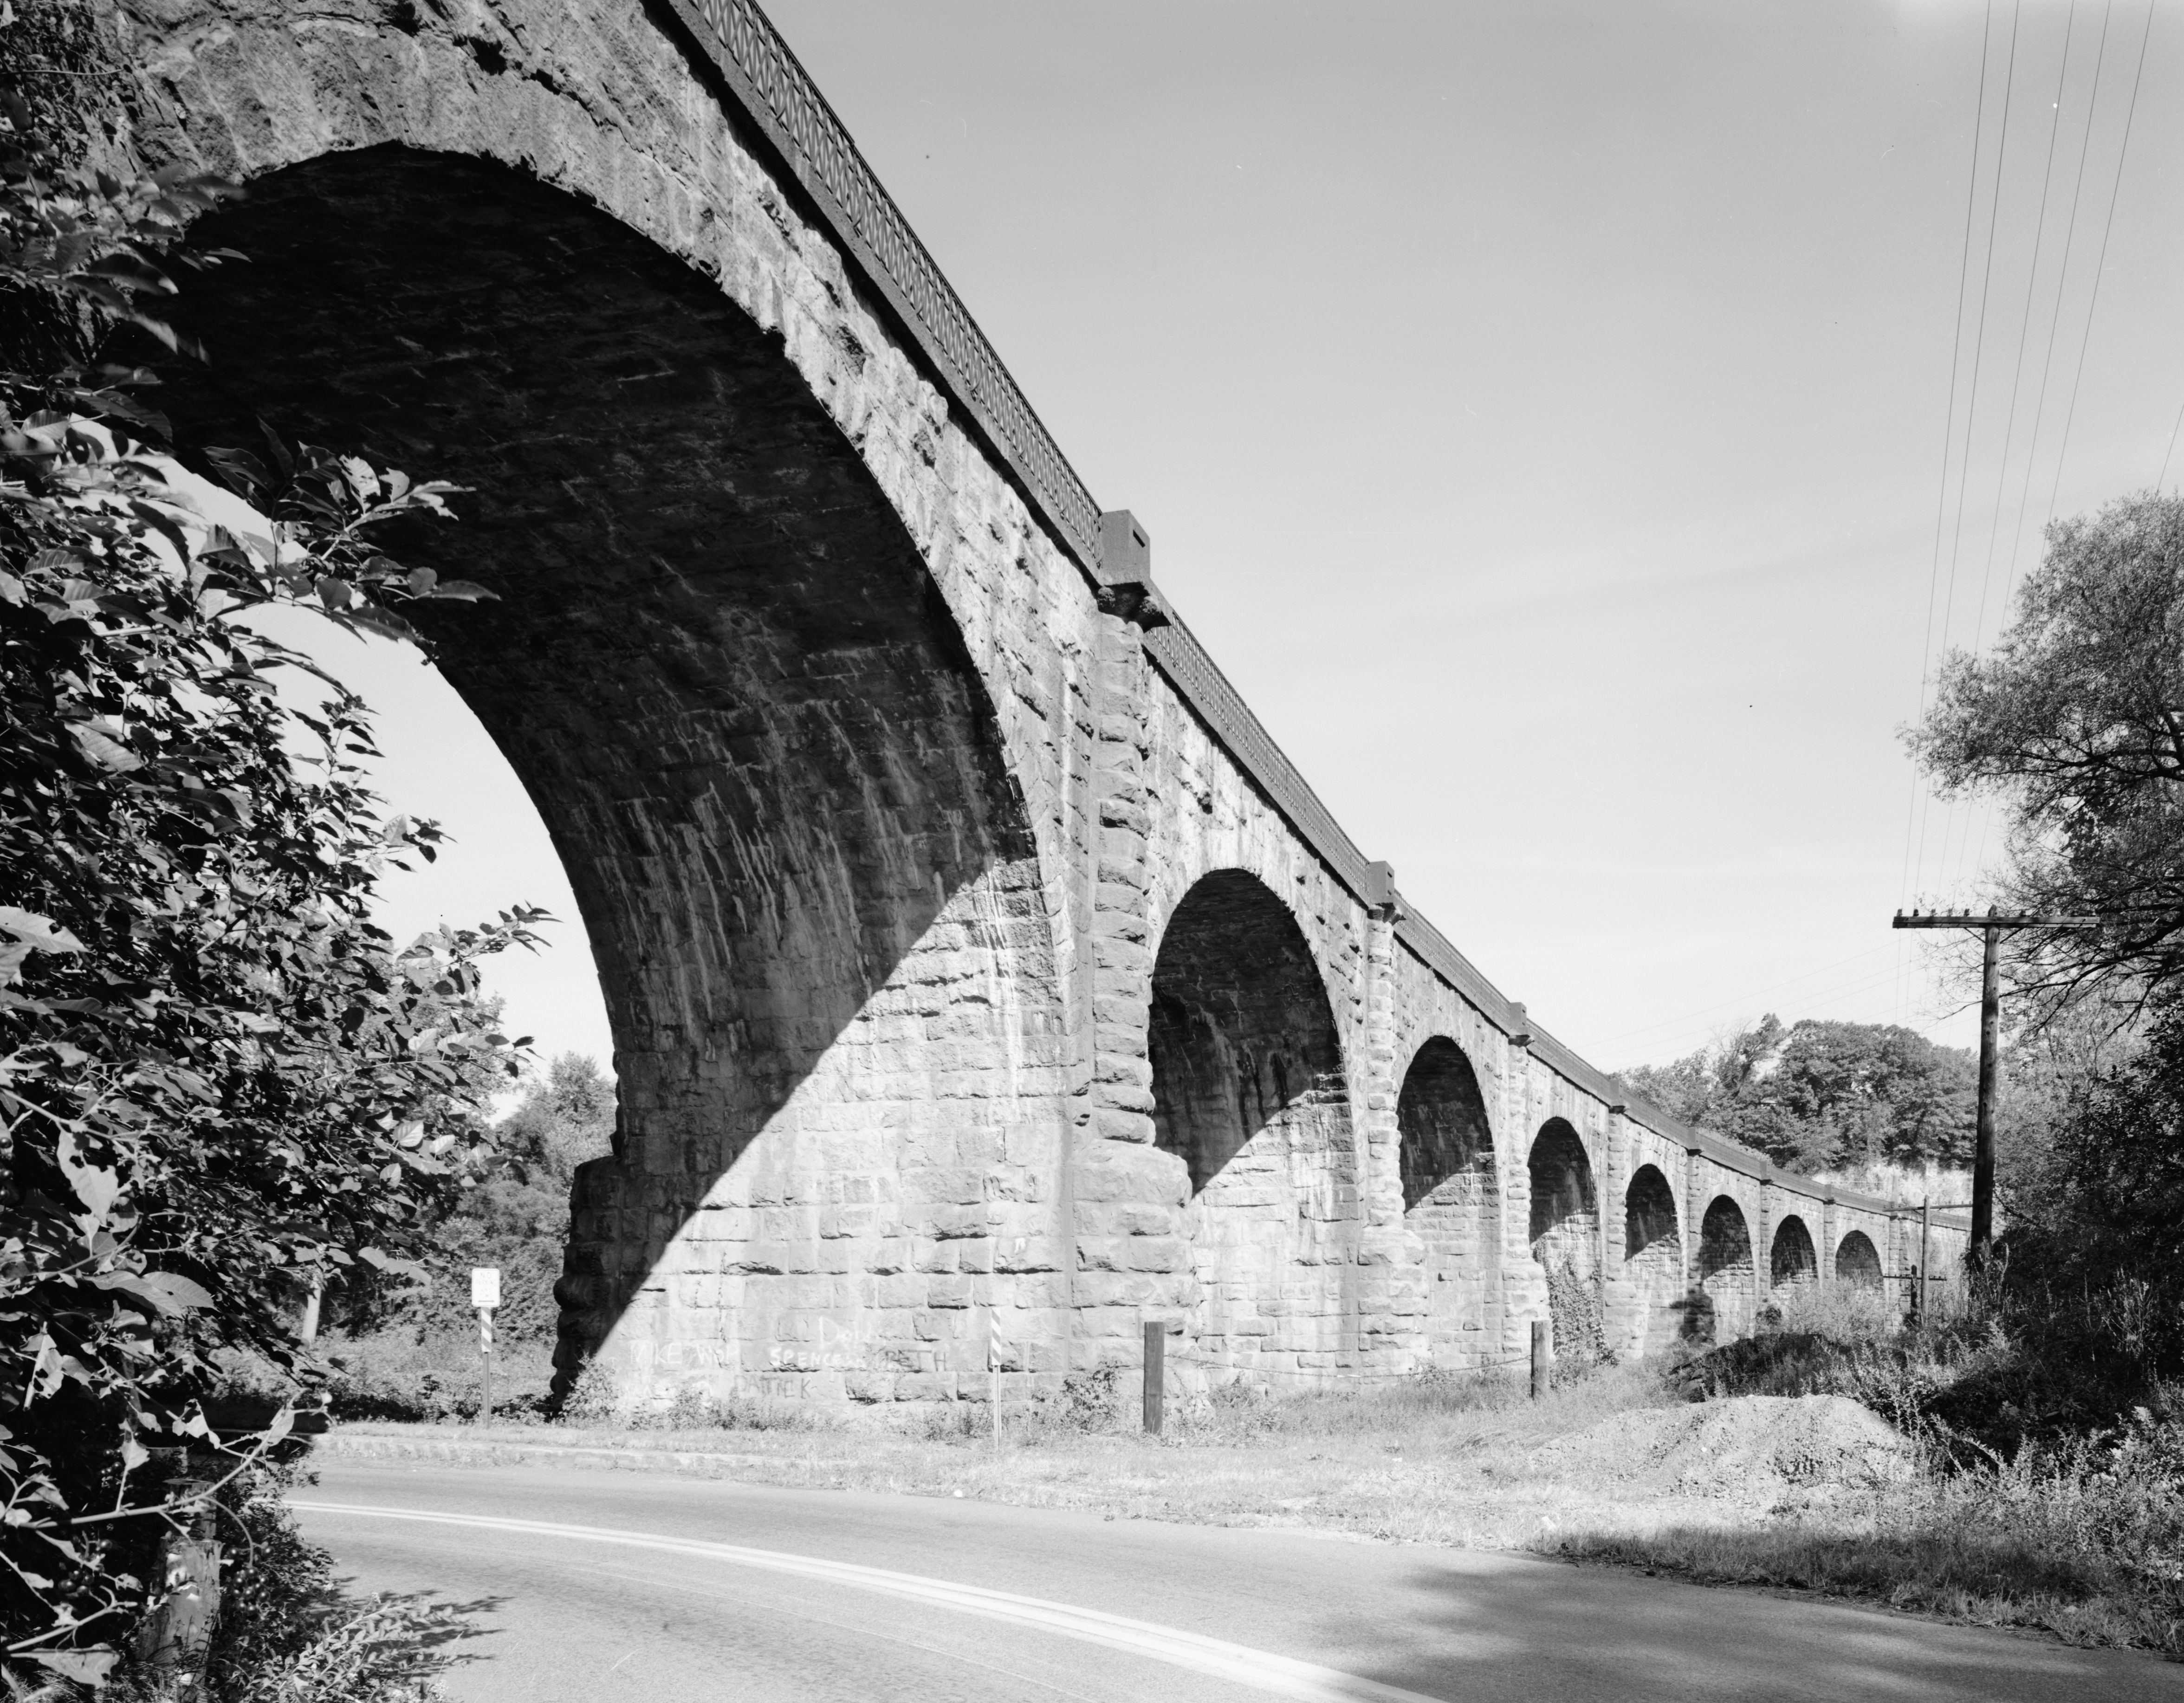 Viaducts in the united states for Bill burton fishing pier state park